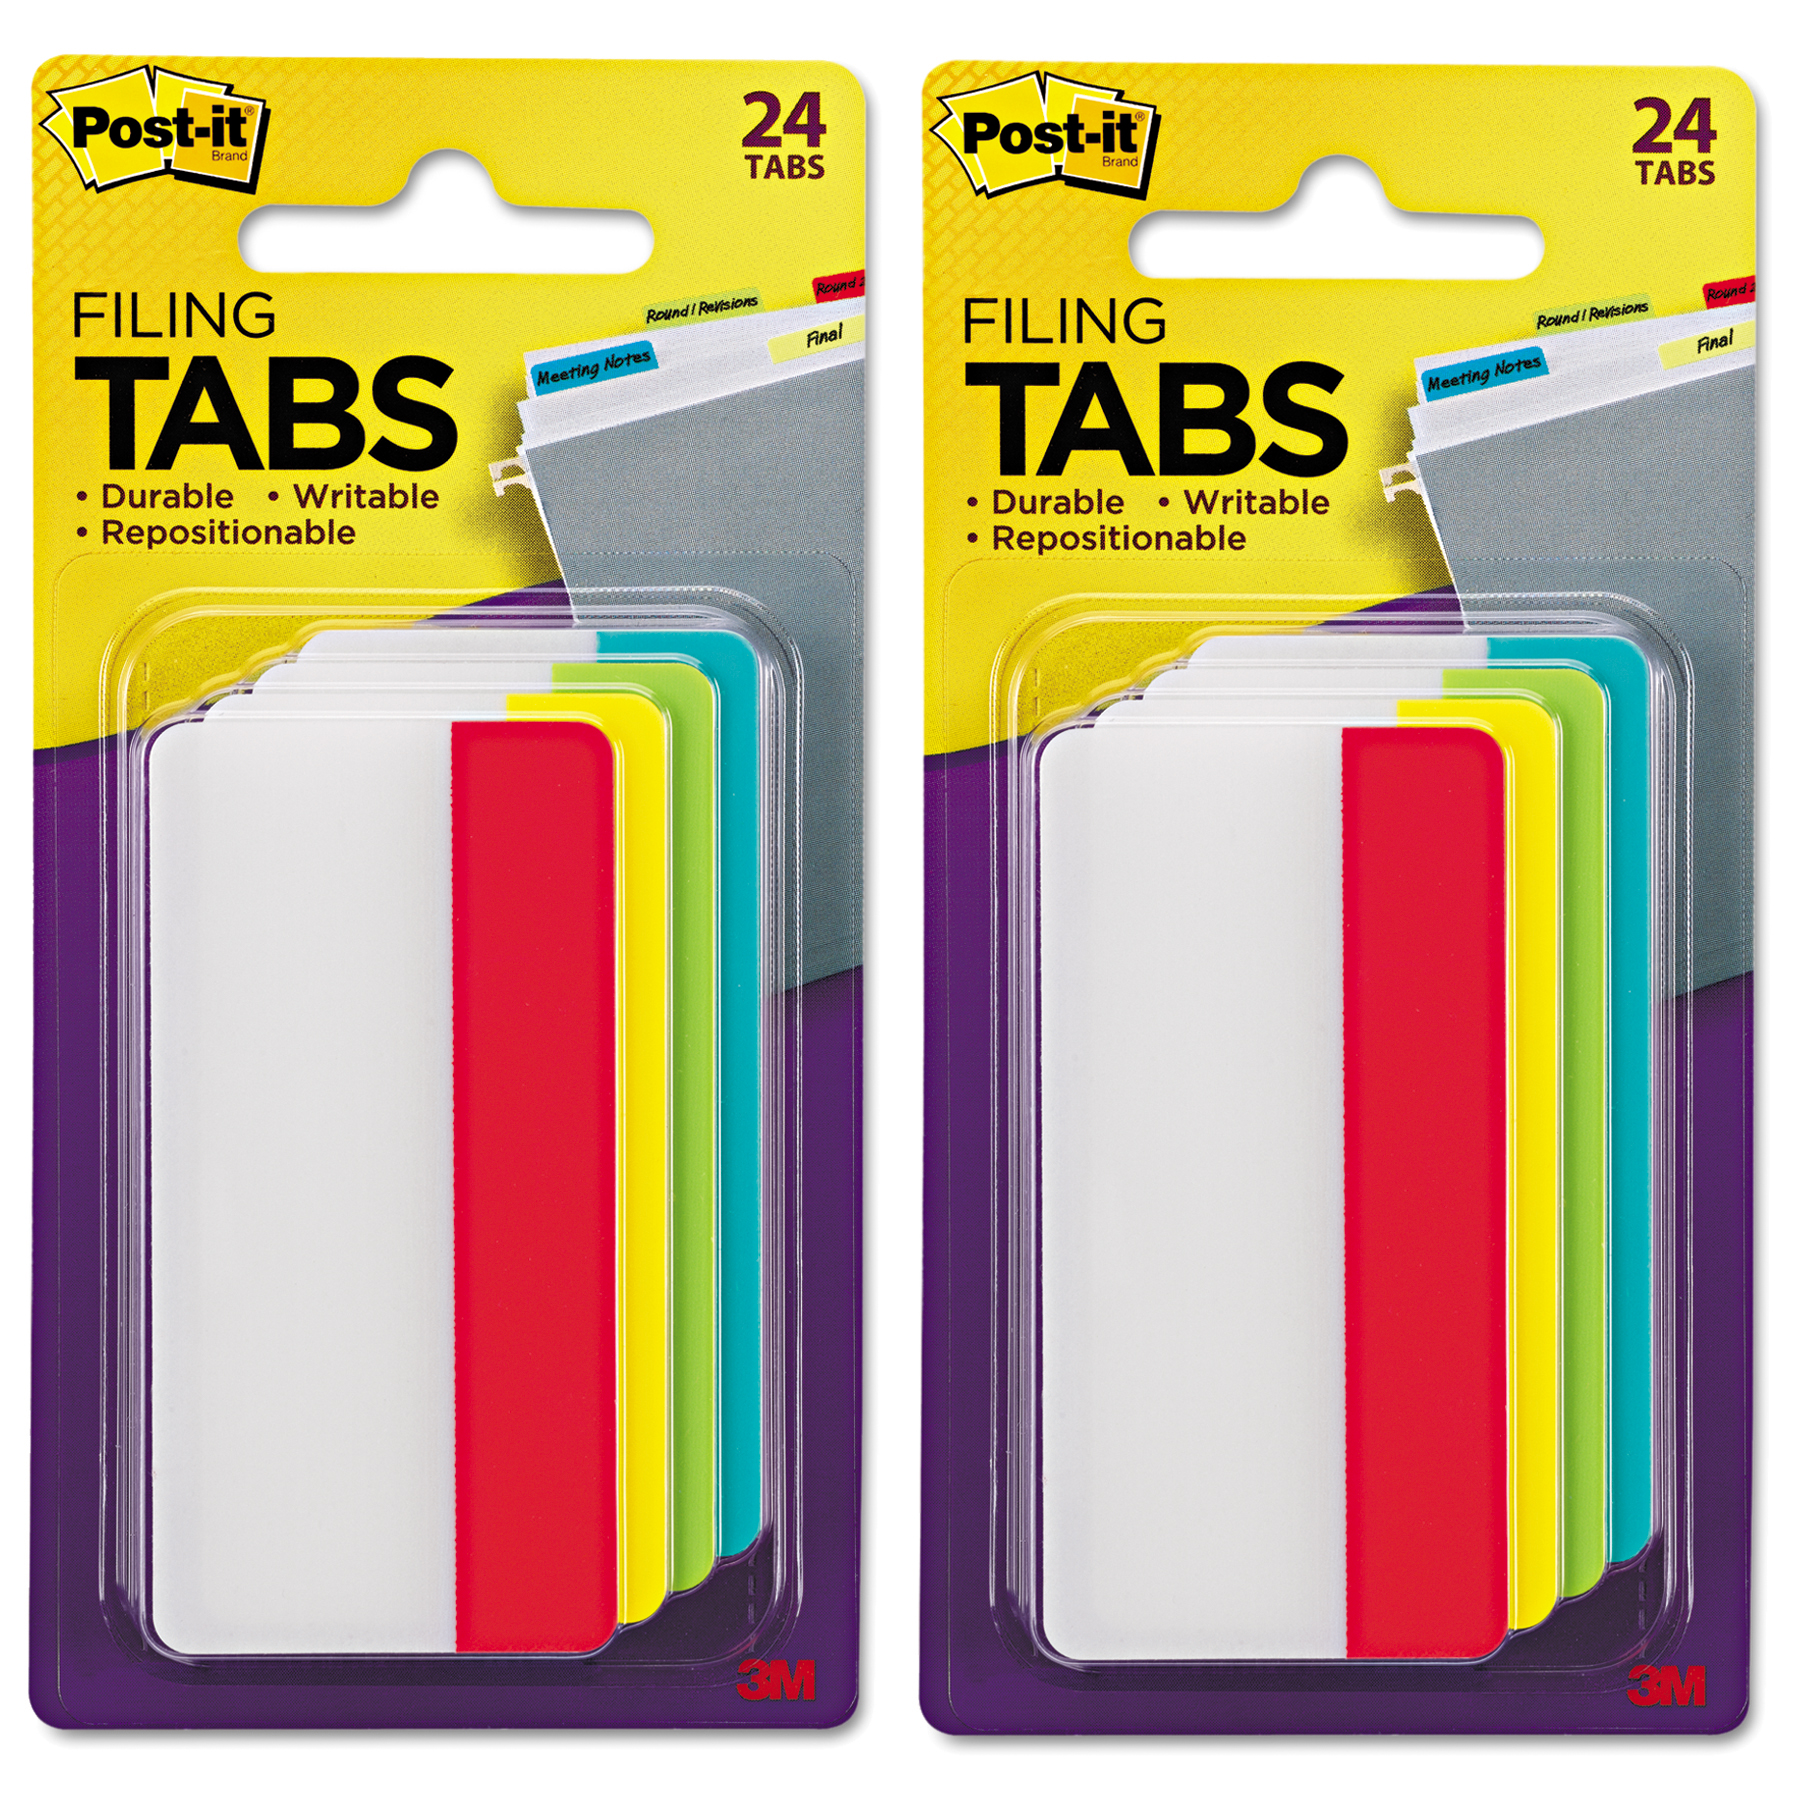 (2 Pack) Post-it Tabs, 3 in., Solid, Assorted Primary Colors, 6 Tabs/Color, 4 Colors, 24 Tabs/Pack